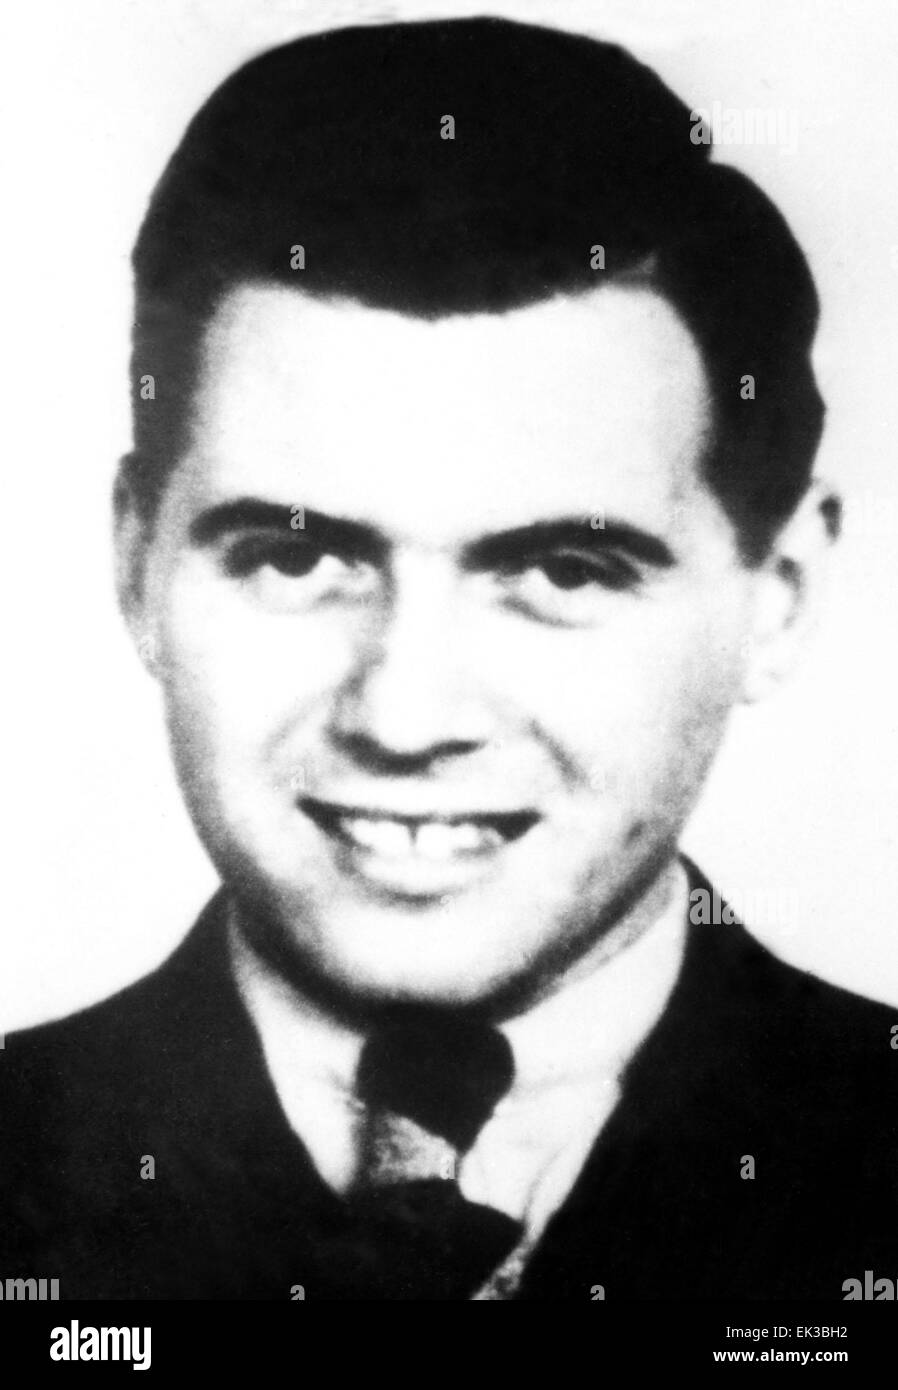 essay on dr josef mengele Dr josef mengele was the notorious ss doctor that performed pseudoscientific medical experiments on twins and others at auschwitz.